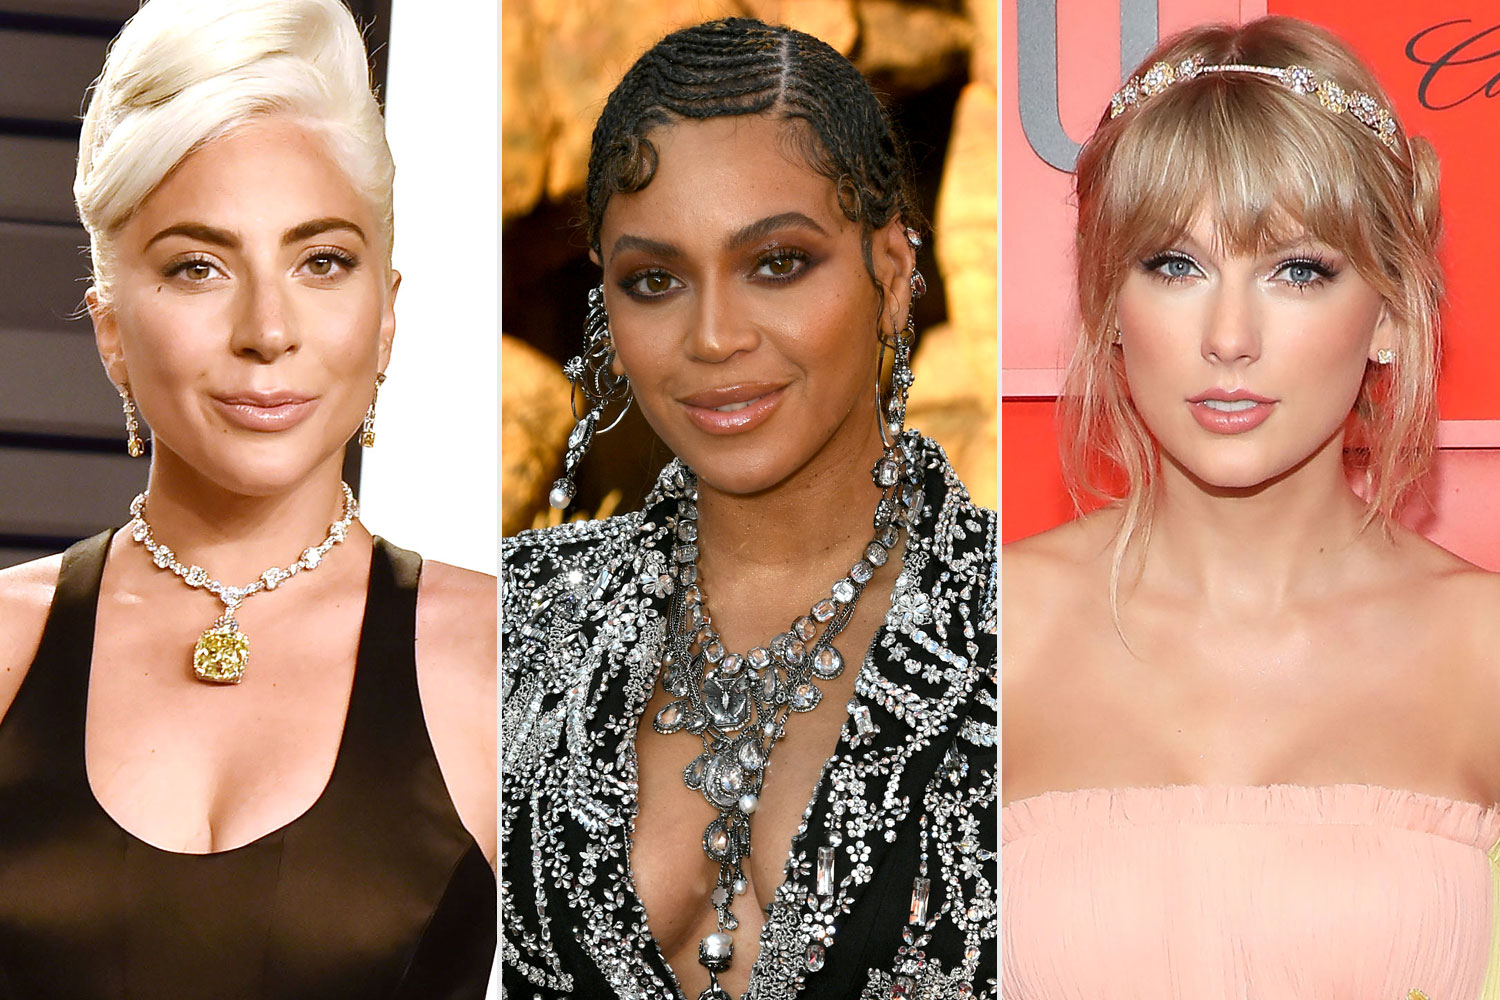 Beyonce, Taylor Swift, Lady Gaga